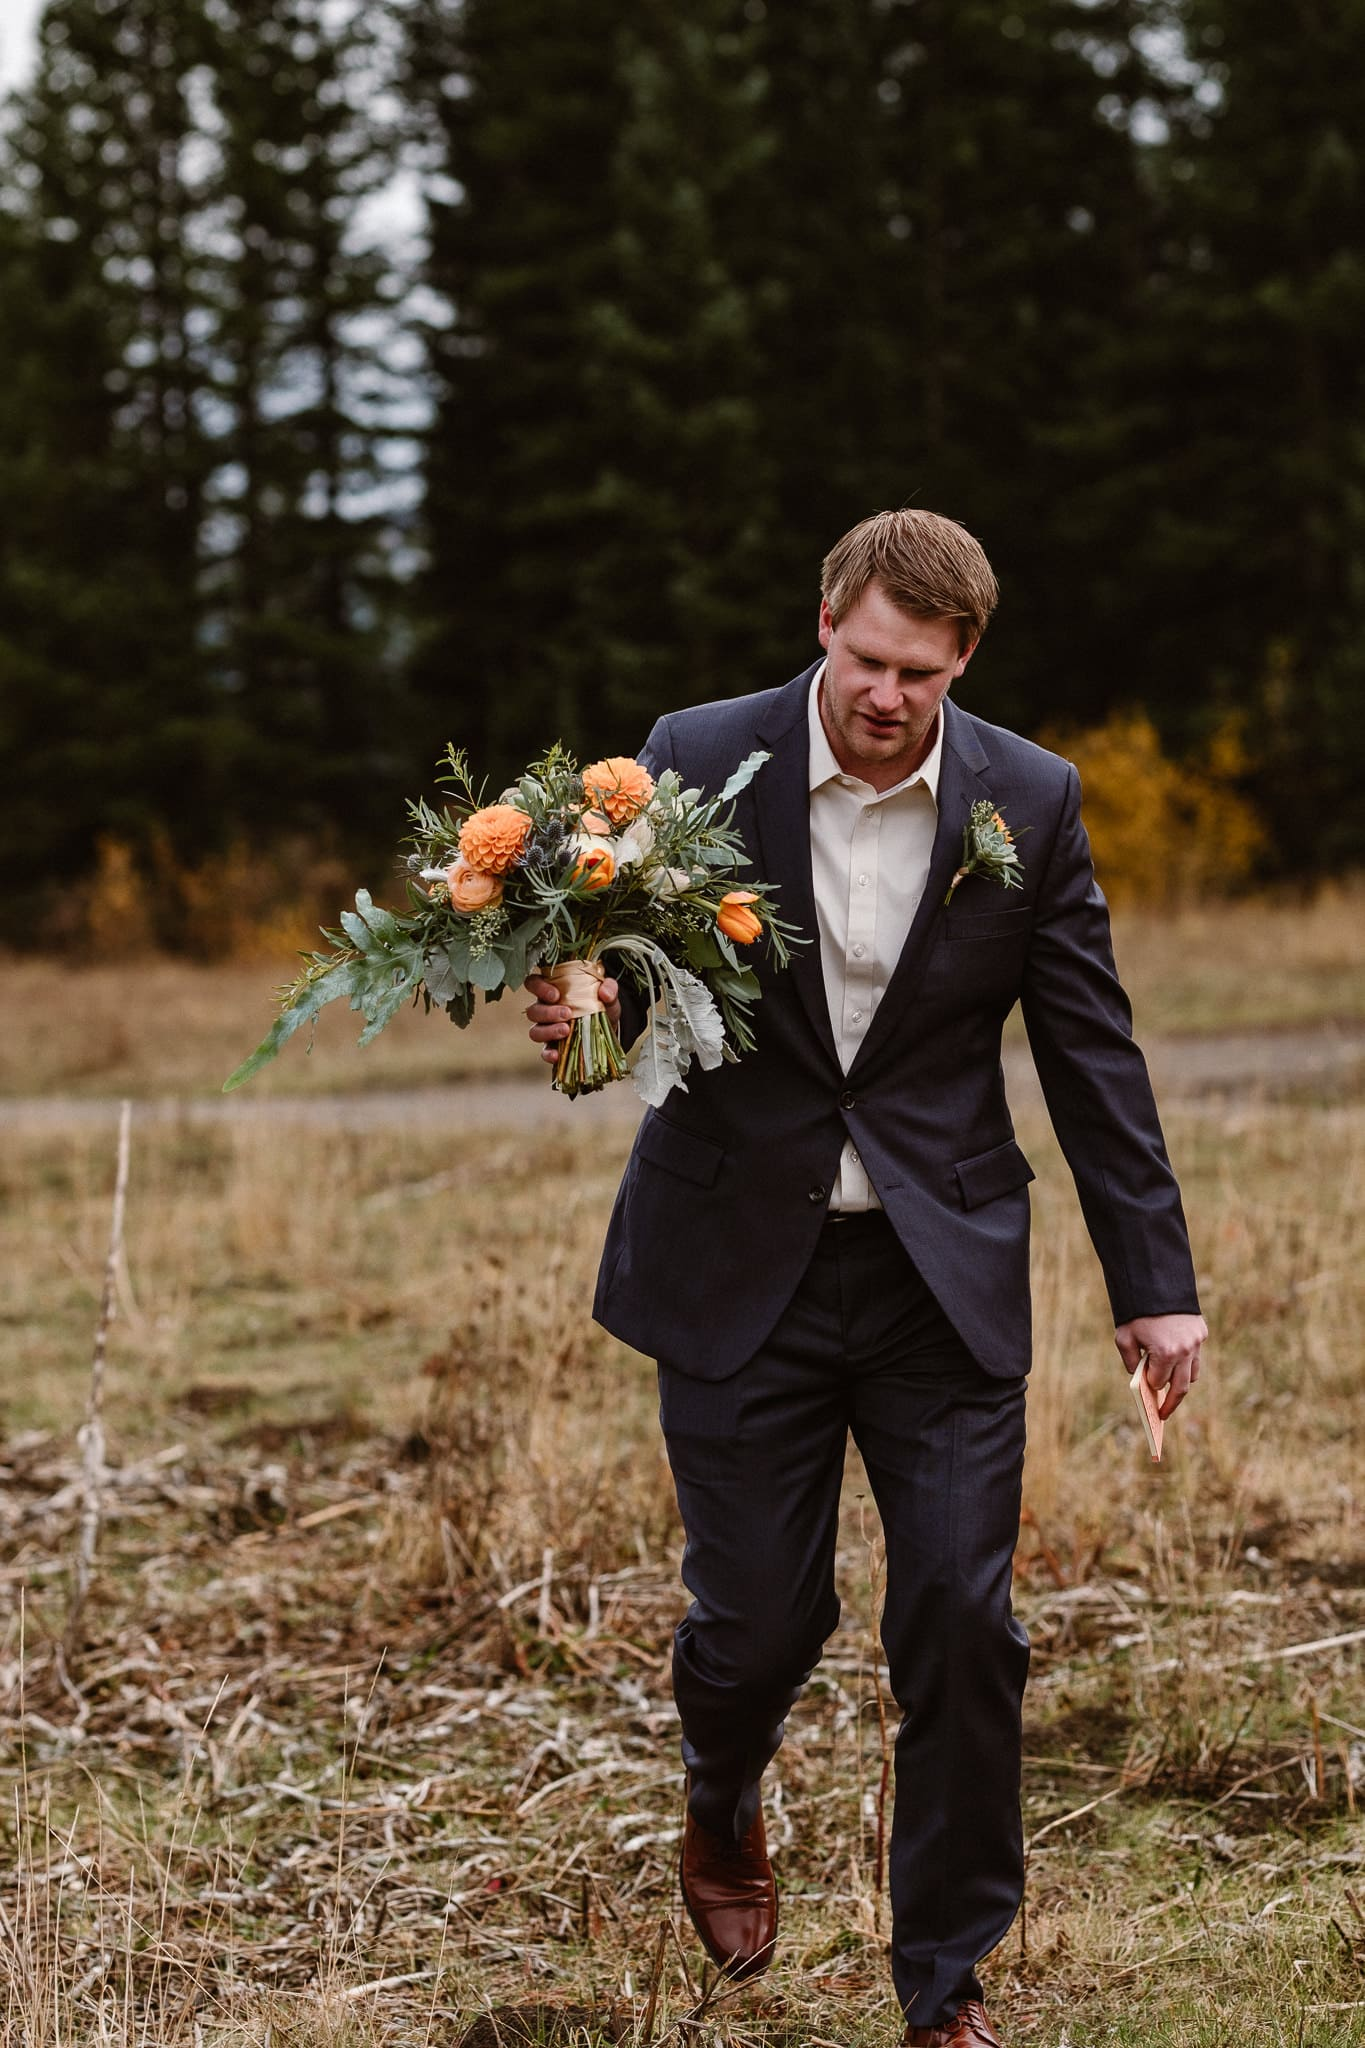 Crested Butte Wedding Photographer, Scarp Ridge Lodge intimate elopement, self solemnized elopement in Colorado, bride and groom portraits, Colorado mountain adventure wedding, groom carrying bouquet